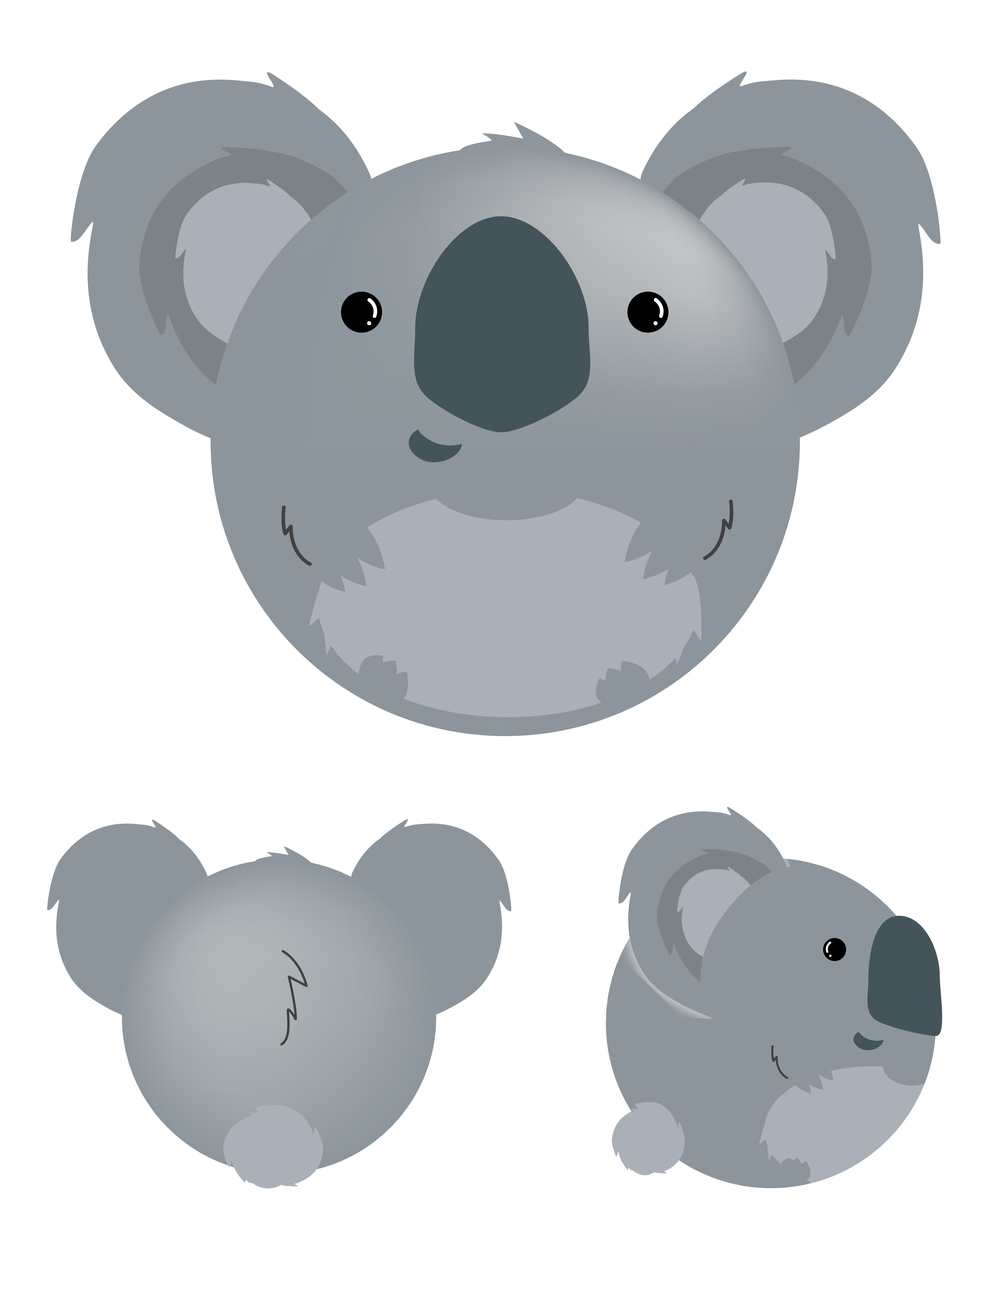 Stuffed Animal Design